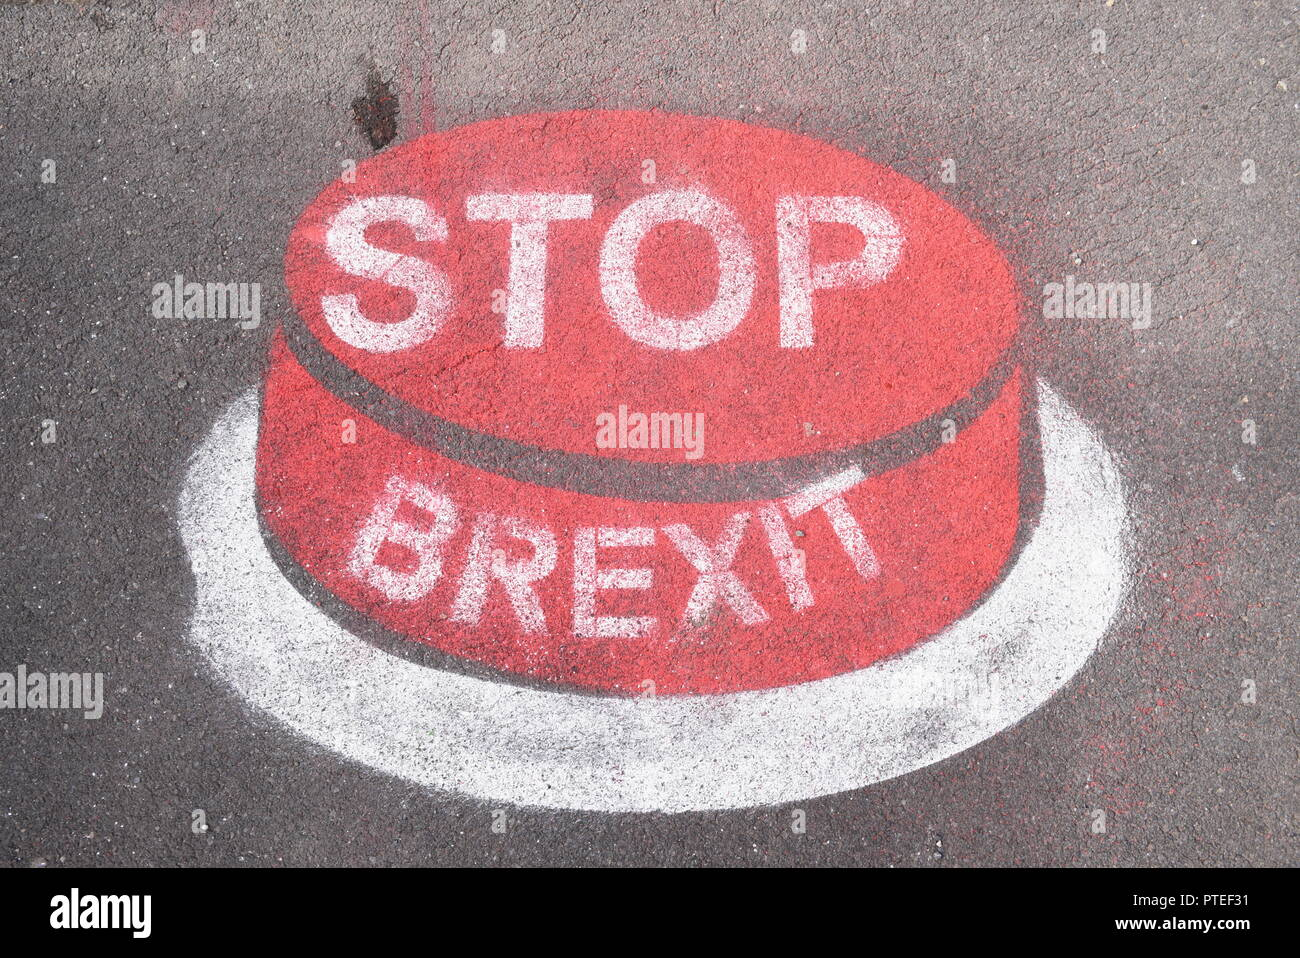 A Stop Brexit message sprayed on a pavement near the Labout Party Conference 2018 in Liverpool, England, UK Stock Photo